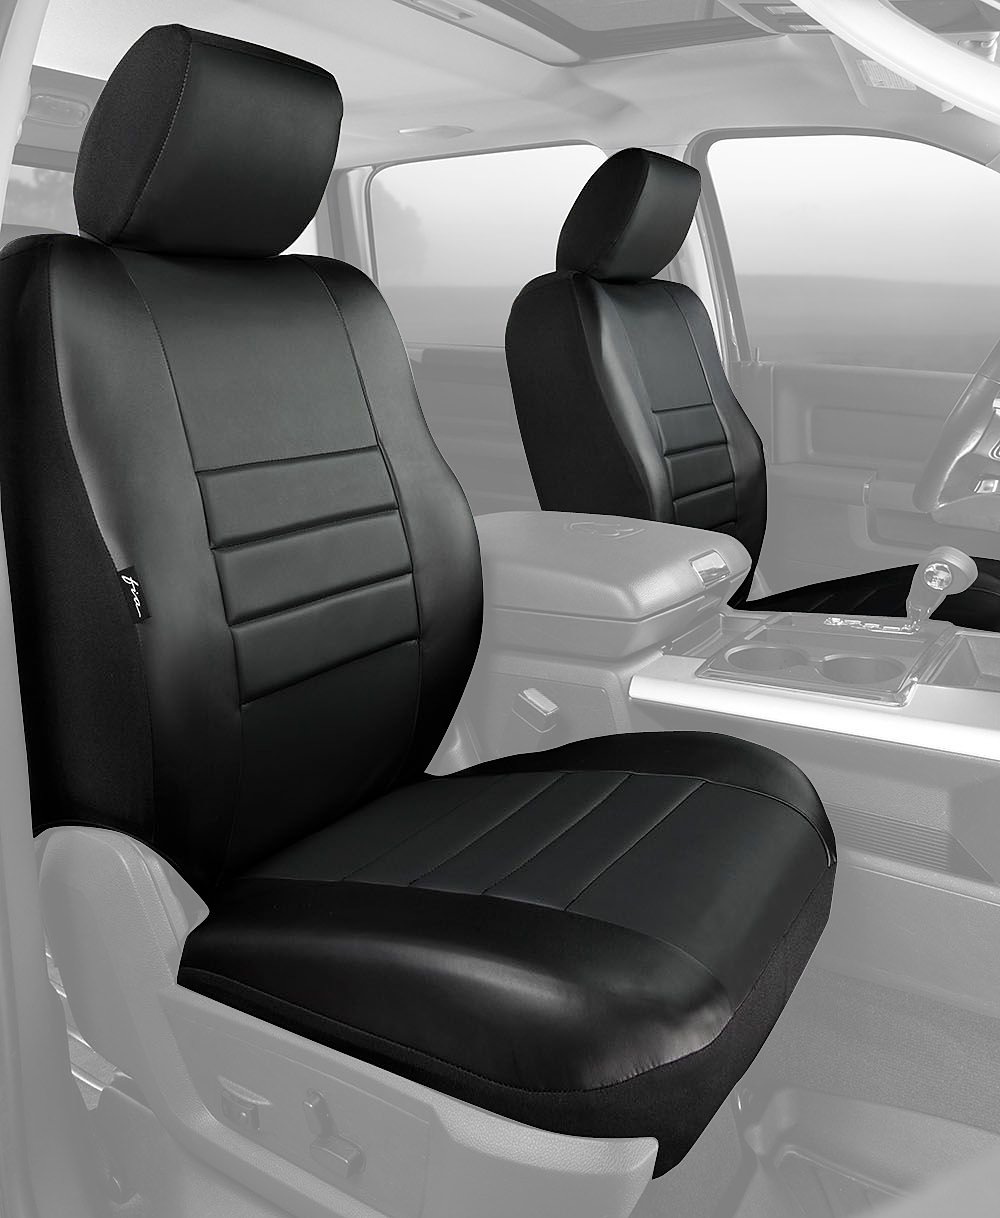 Fia SL69-39 BLK//BLK Custom Fit Front Seat Cover Bucket Seats Solid Black Leatherette